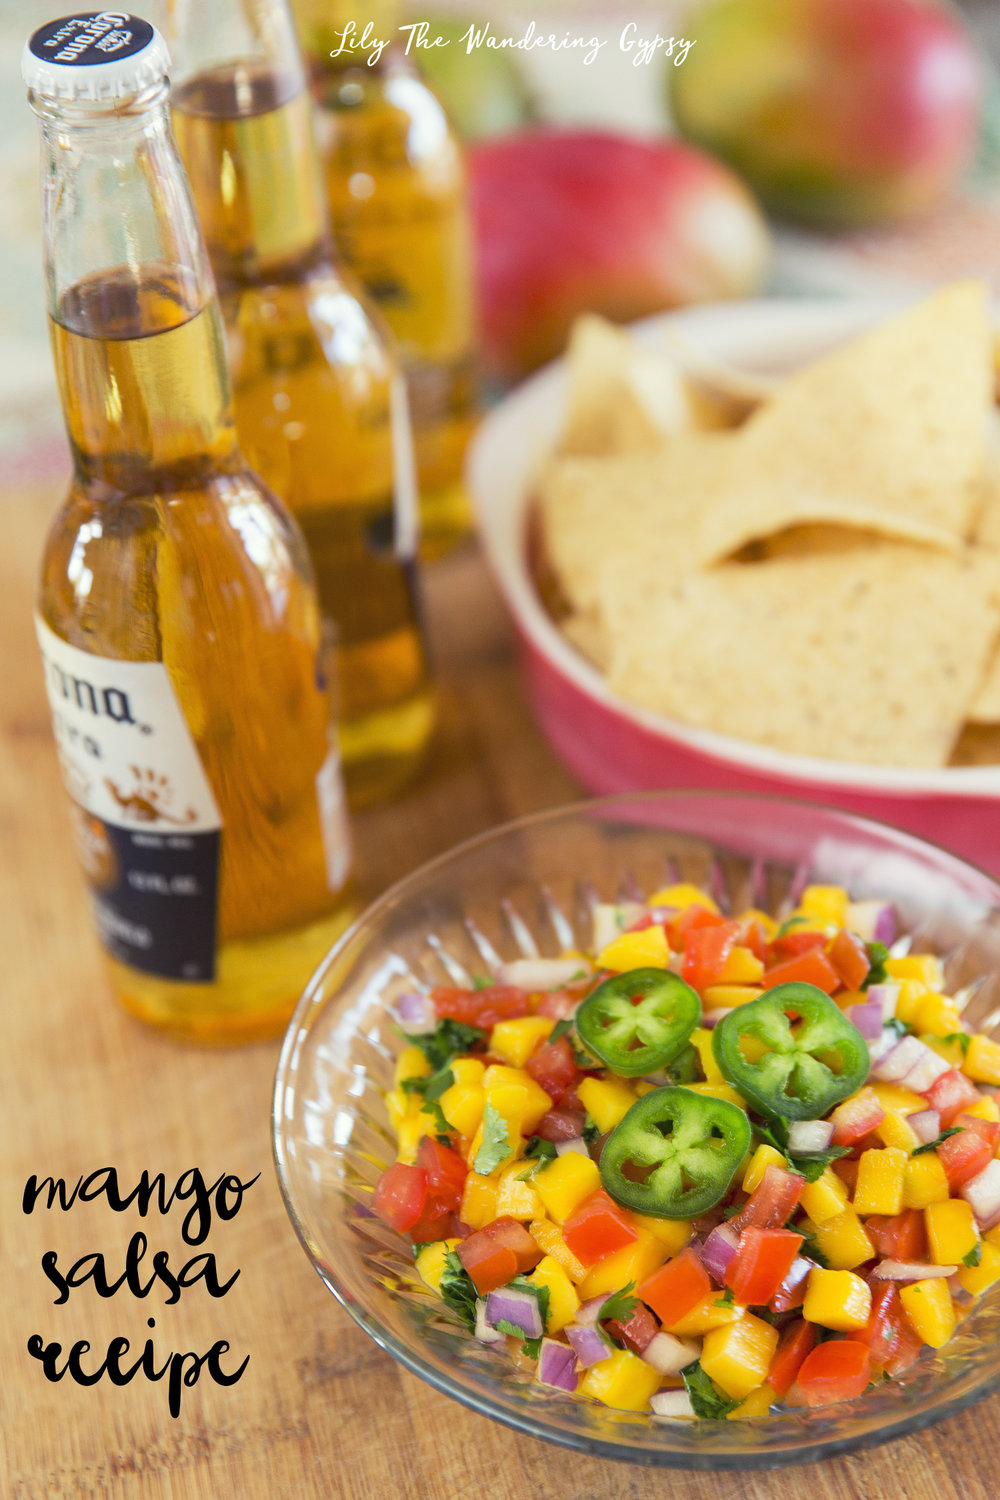 Mango Salsa Recipe by Lily The Wandering Gypsy